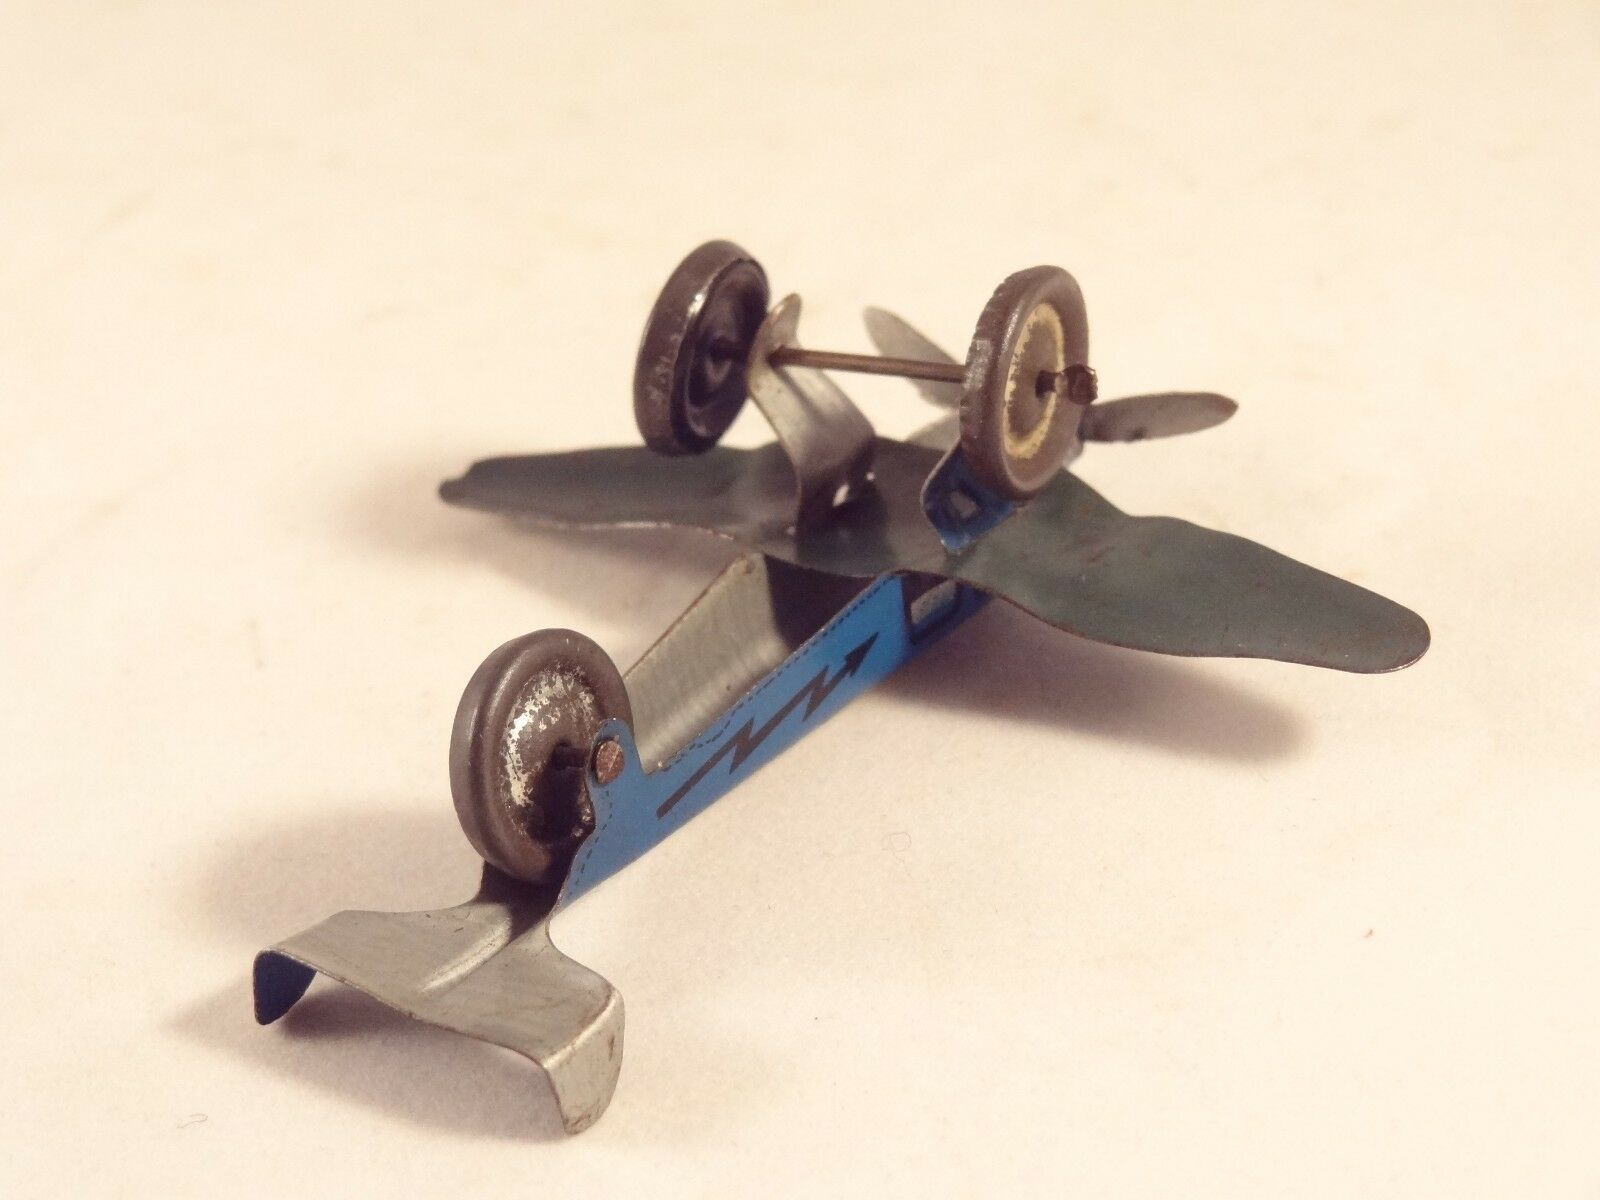 Ancien jouet avion tôle lithographiée Penny toy n°81Made in in in  ITALY1930 INGAP e9de1e